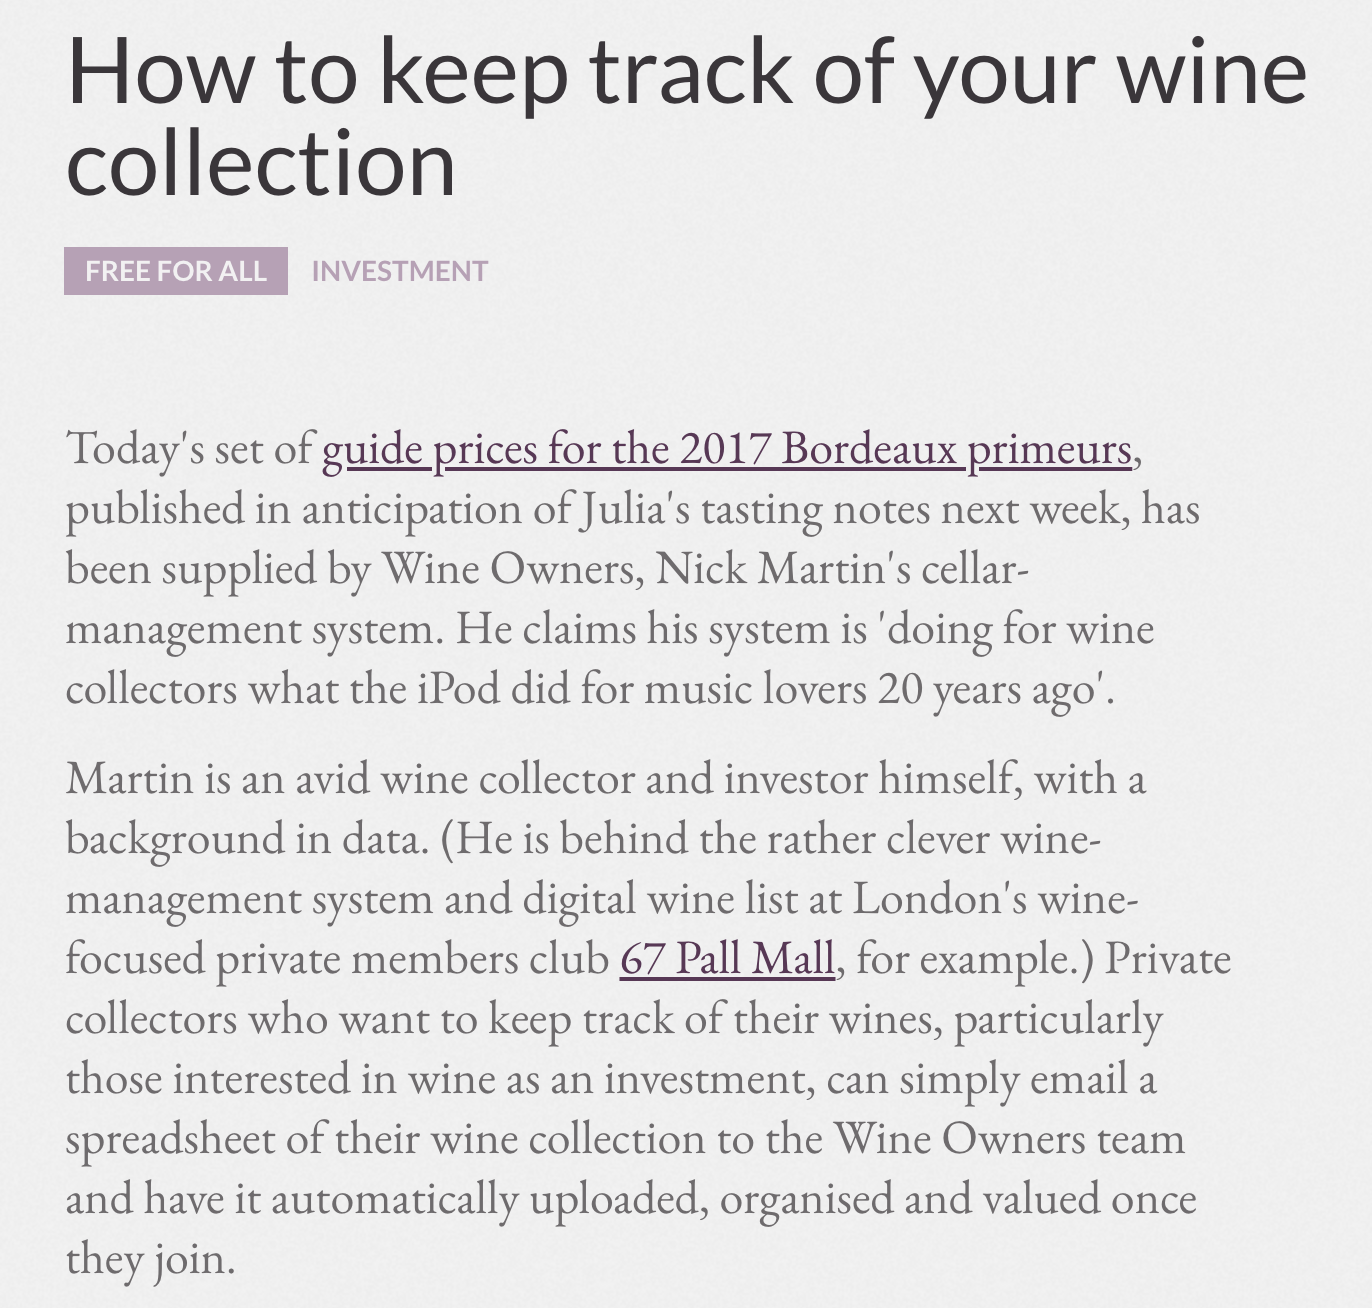 Jancis Robinson - How to keep track of your wine collection